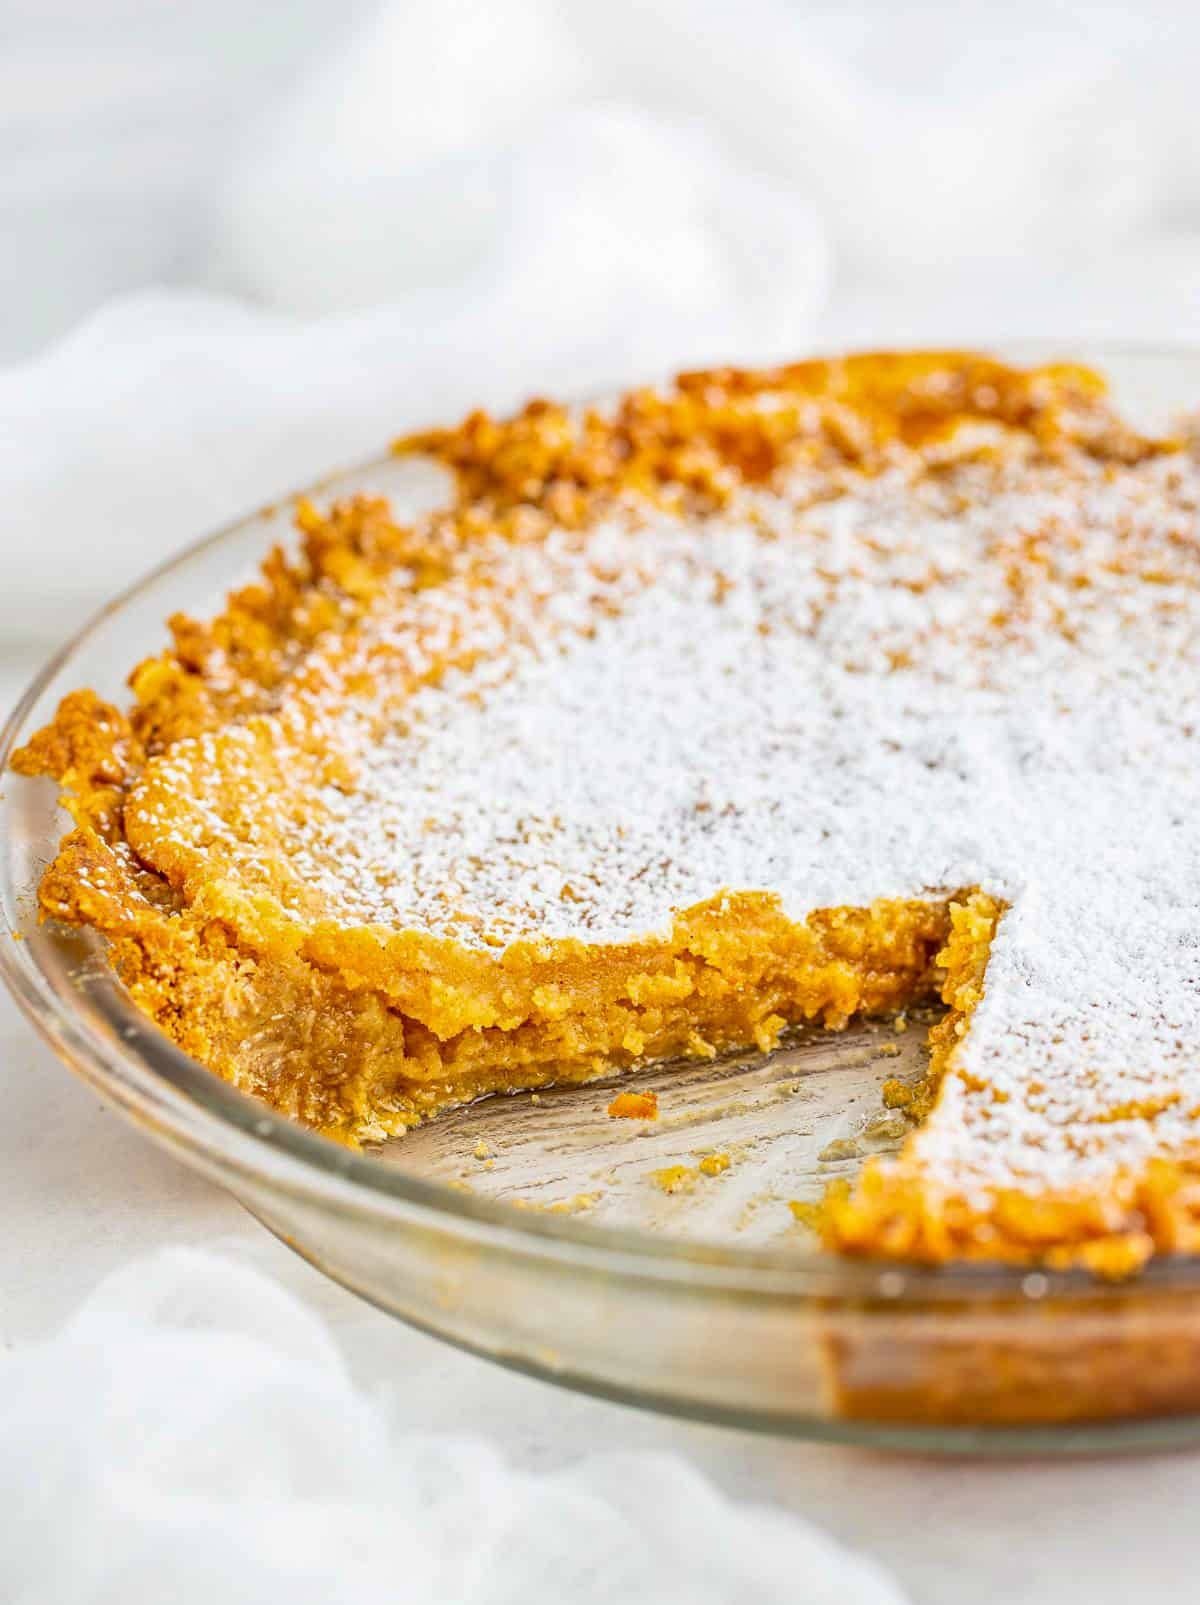 Pie in pie plate with slice missing